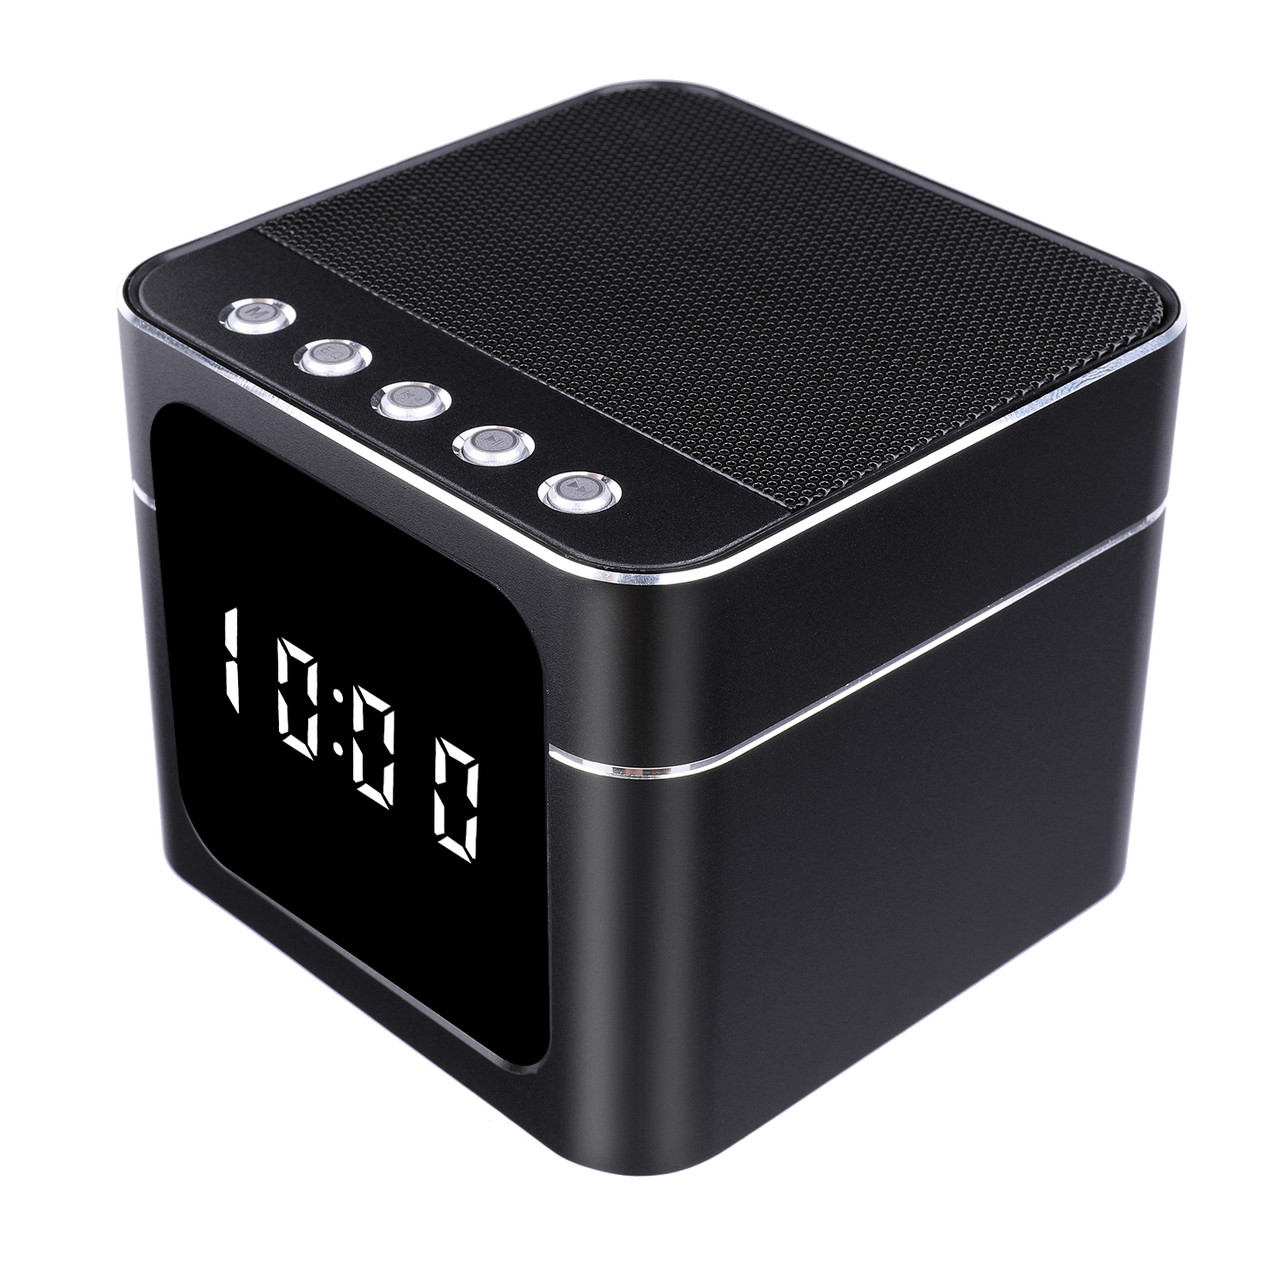 DVR130WF | Night Vision Bluetooth Speaker WiFi DVR | 1080P Hidden Camera